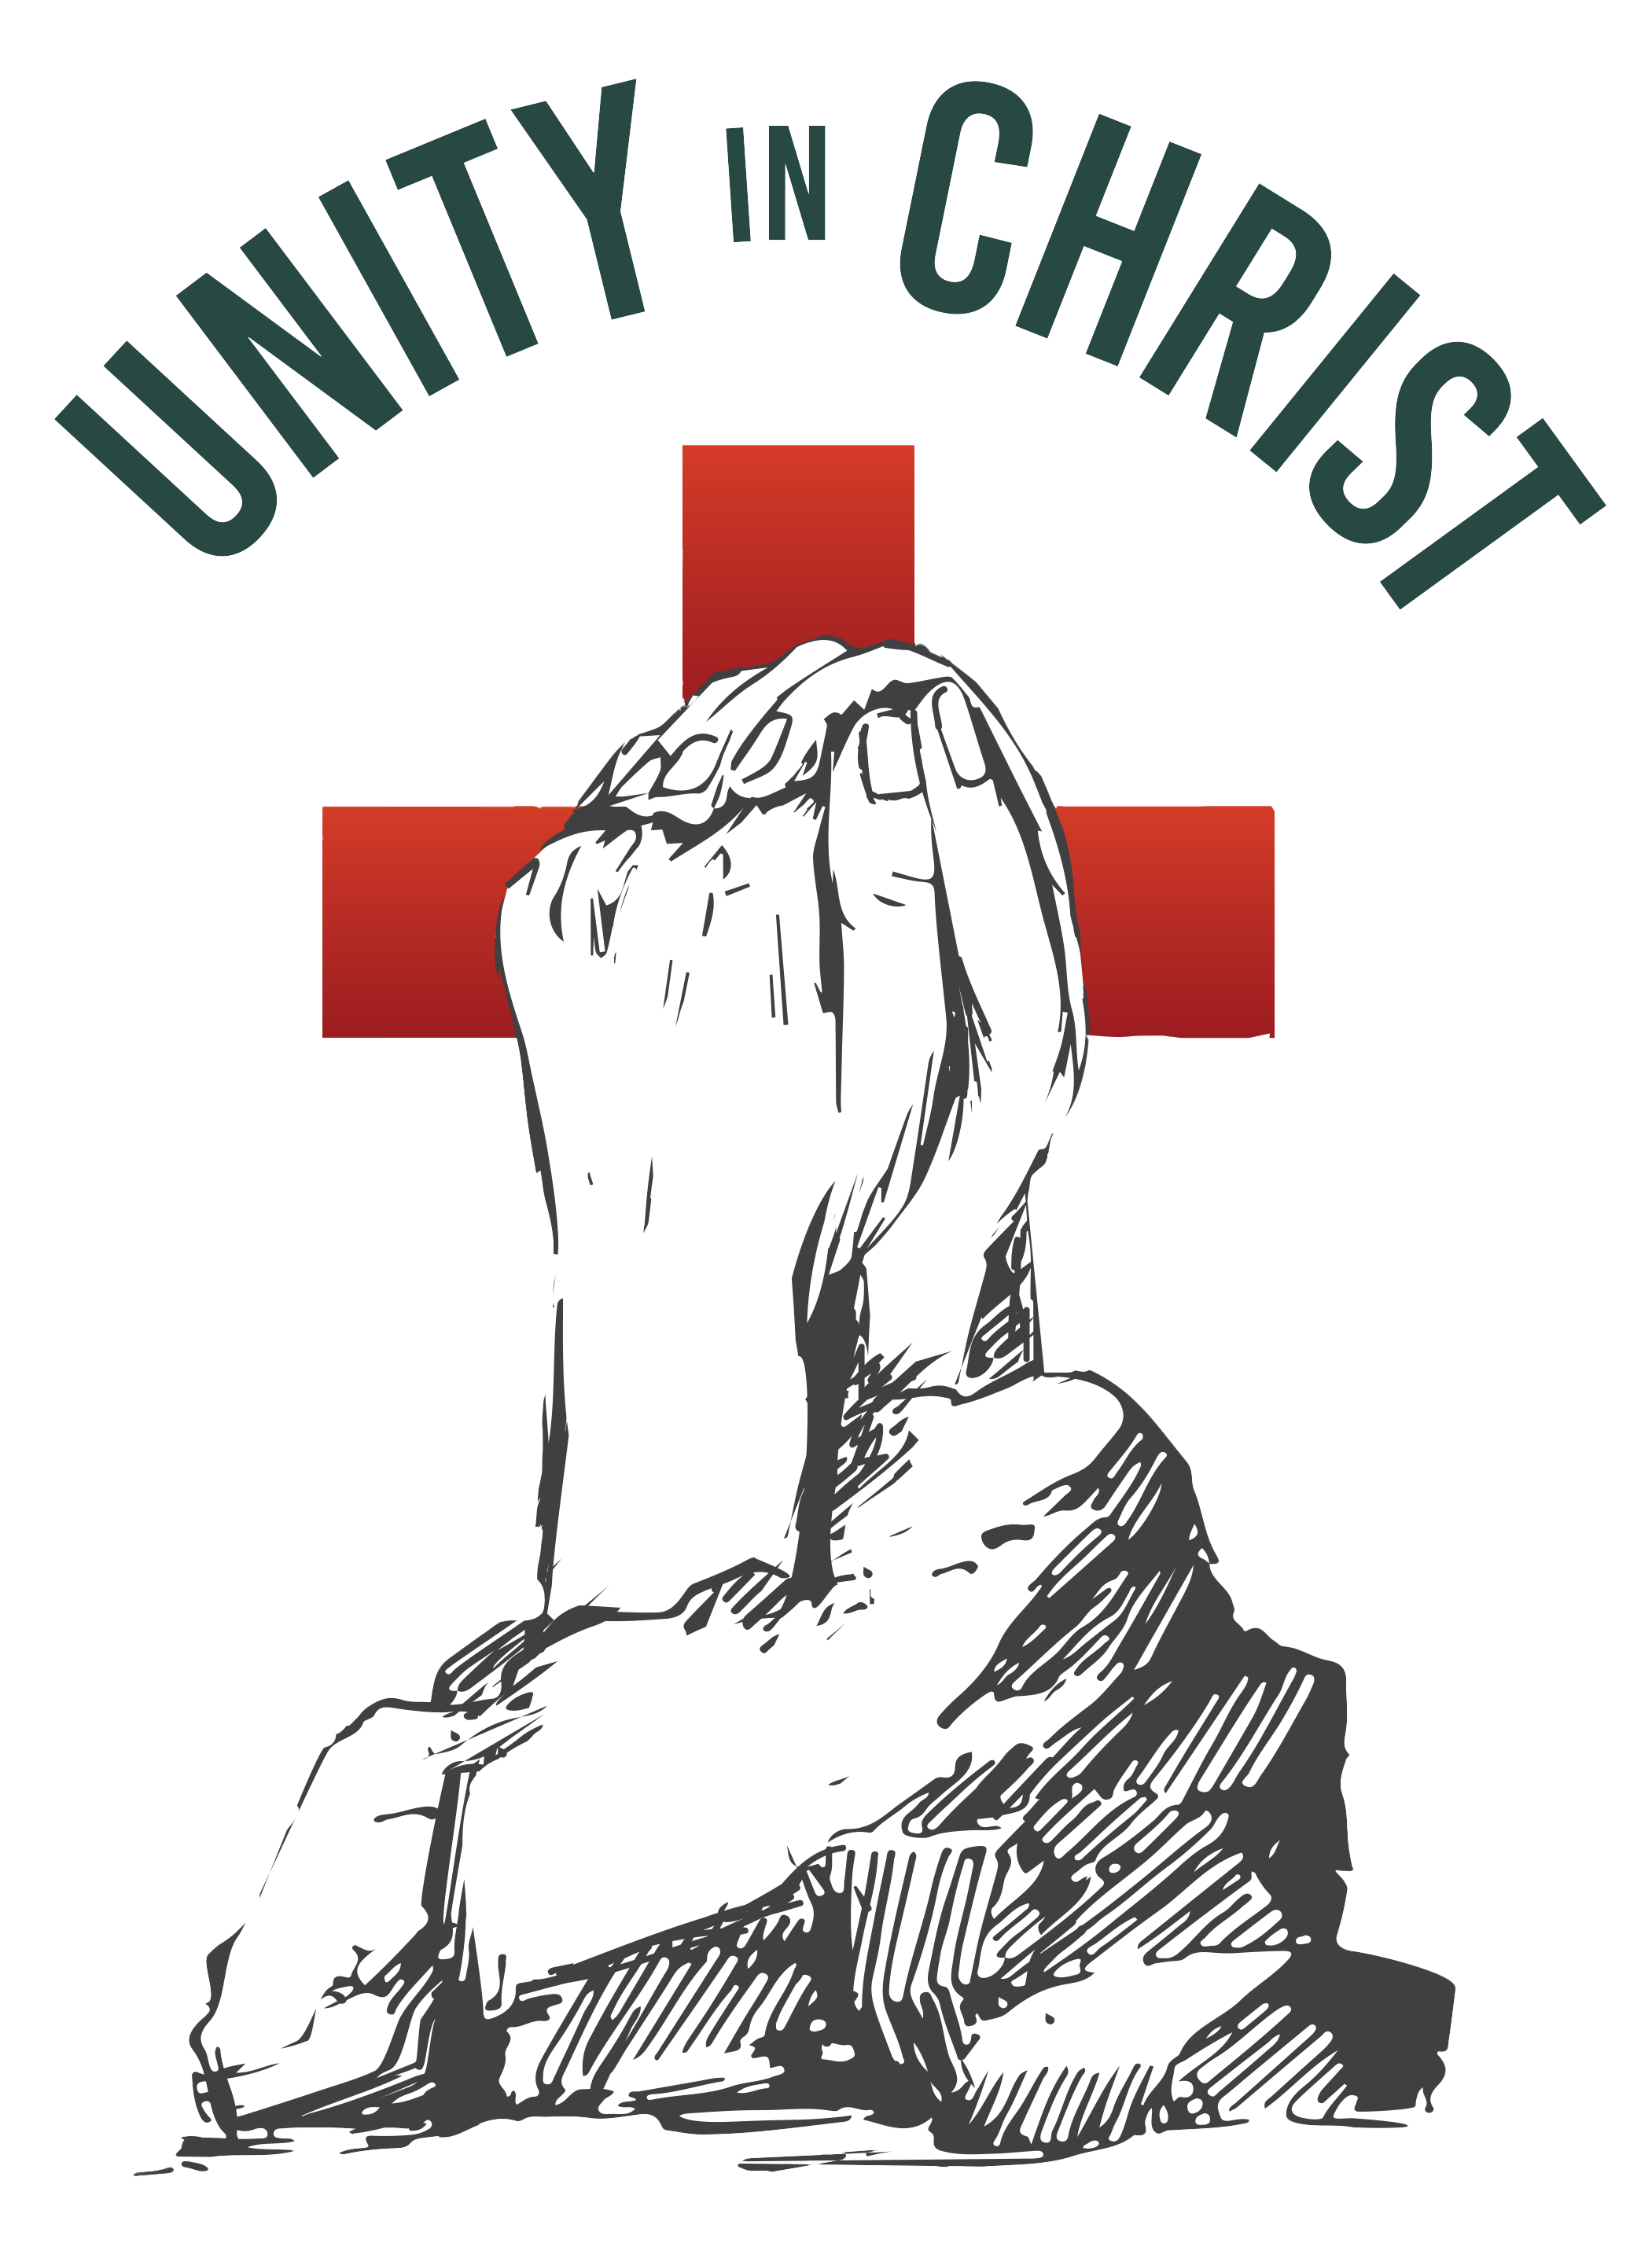 Unity in Christ